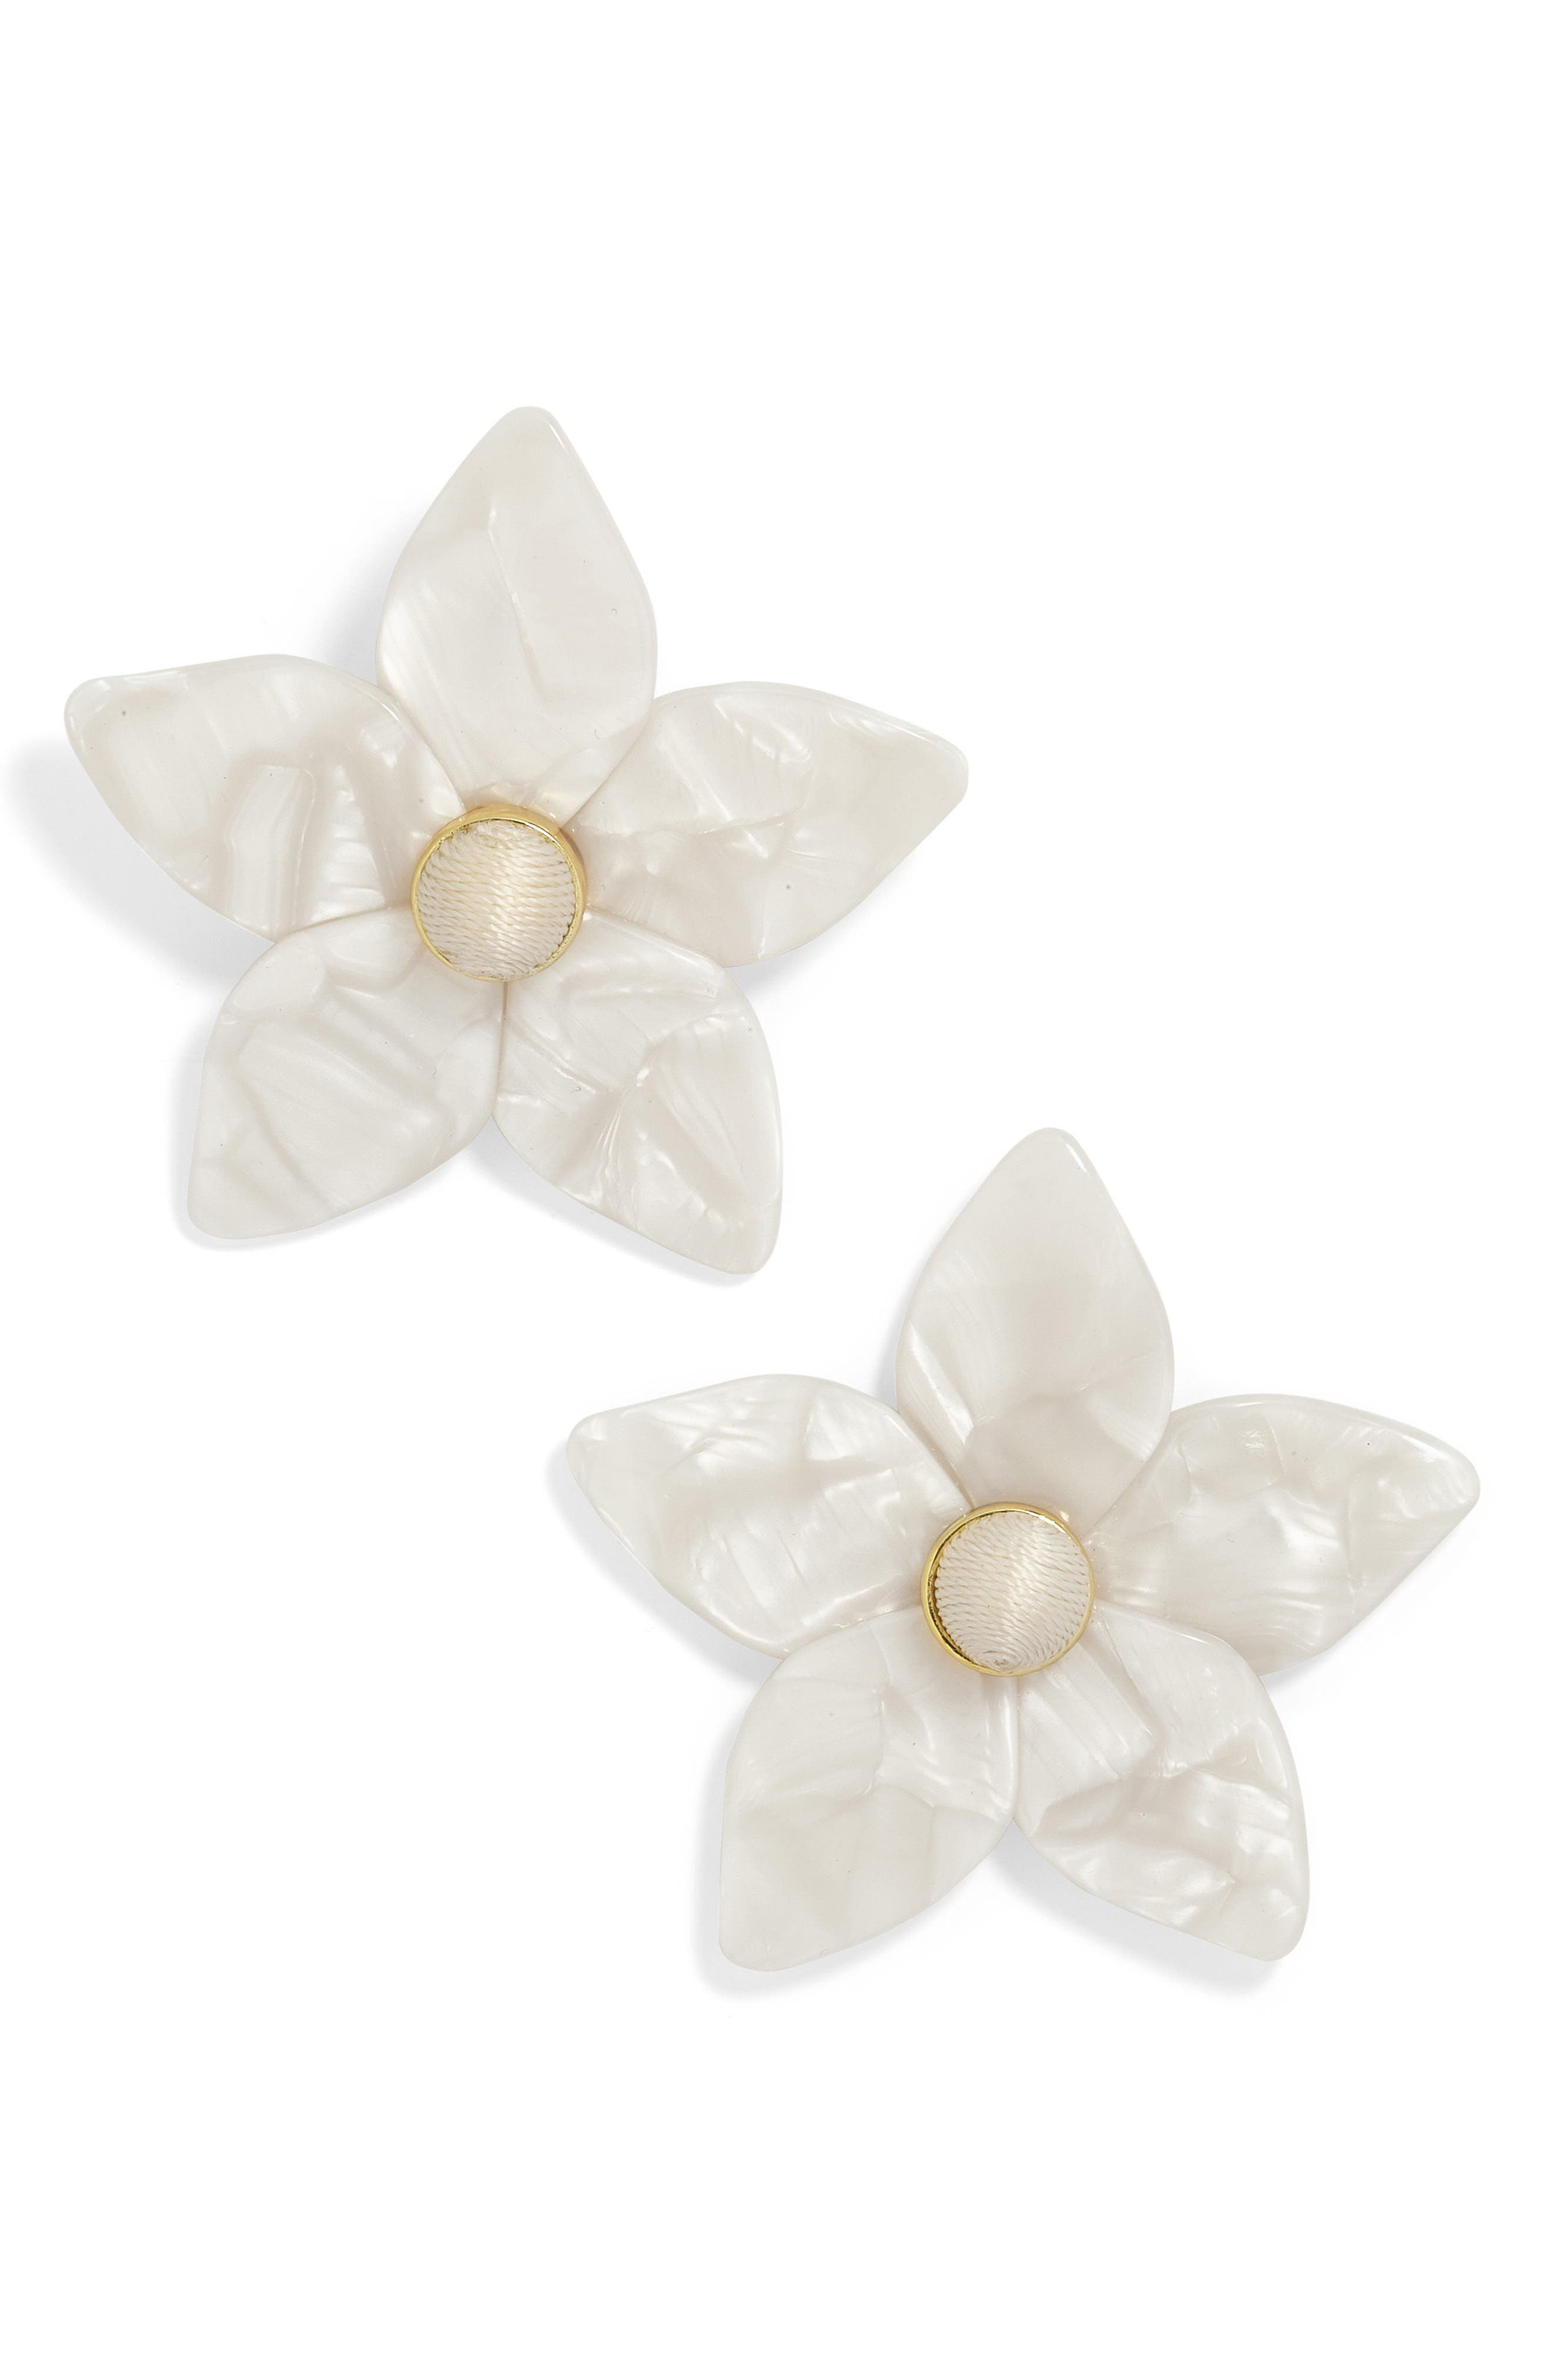 Amariella Acrylic Flower Stud Earrings,                             Alternate thumbnail 2, color,                             WHITE